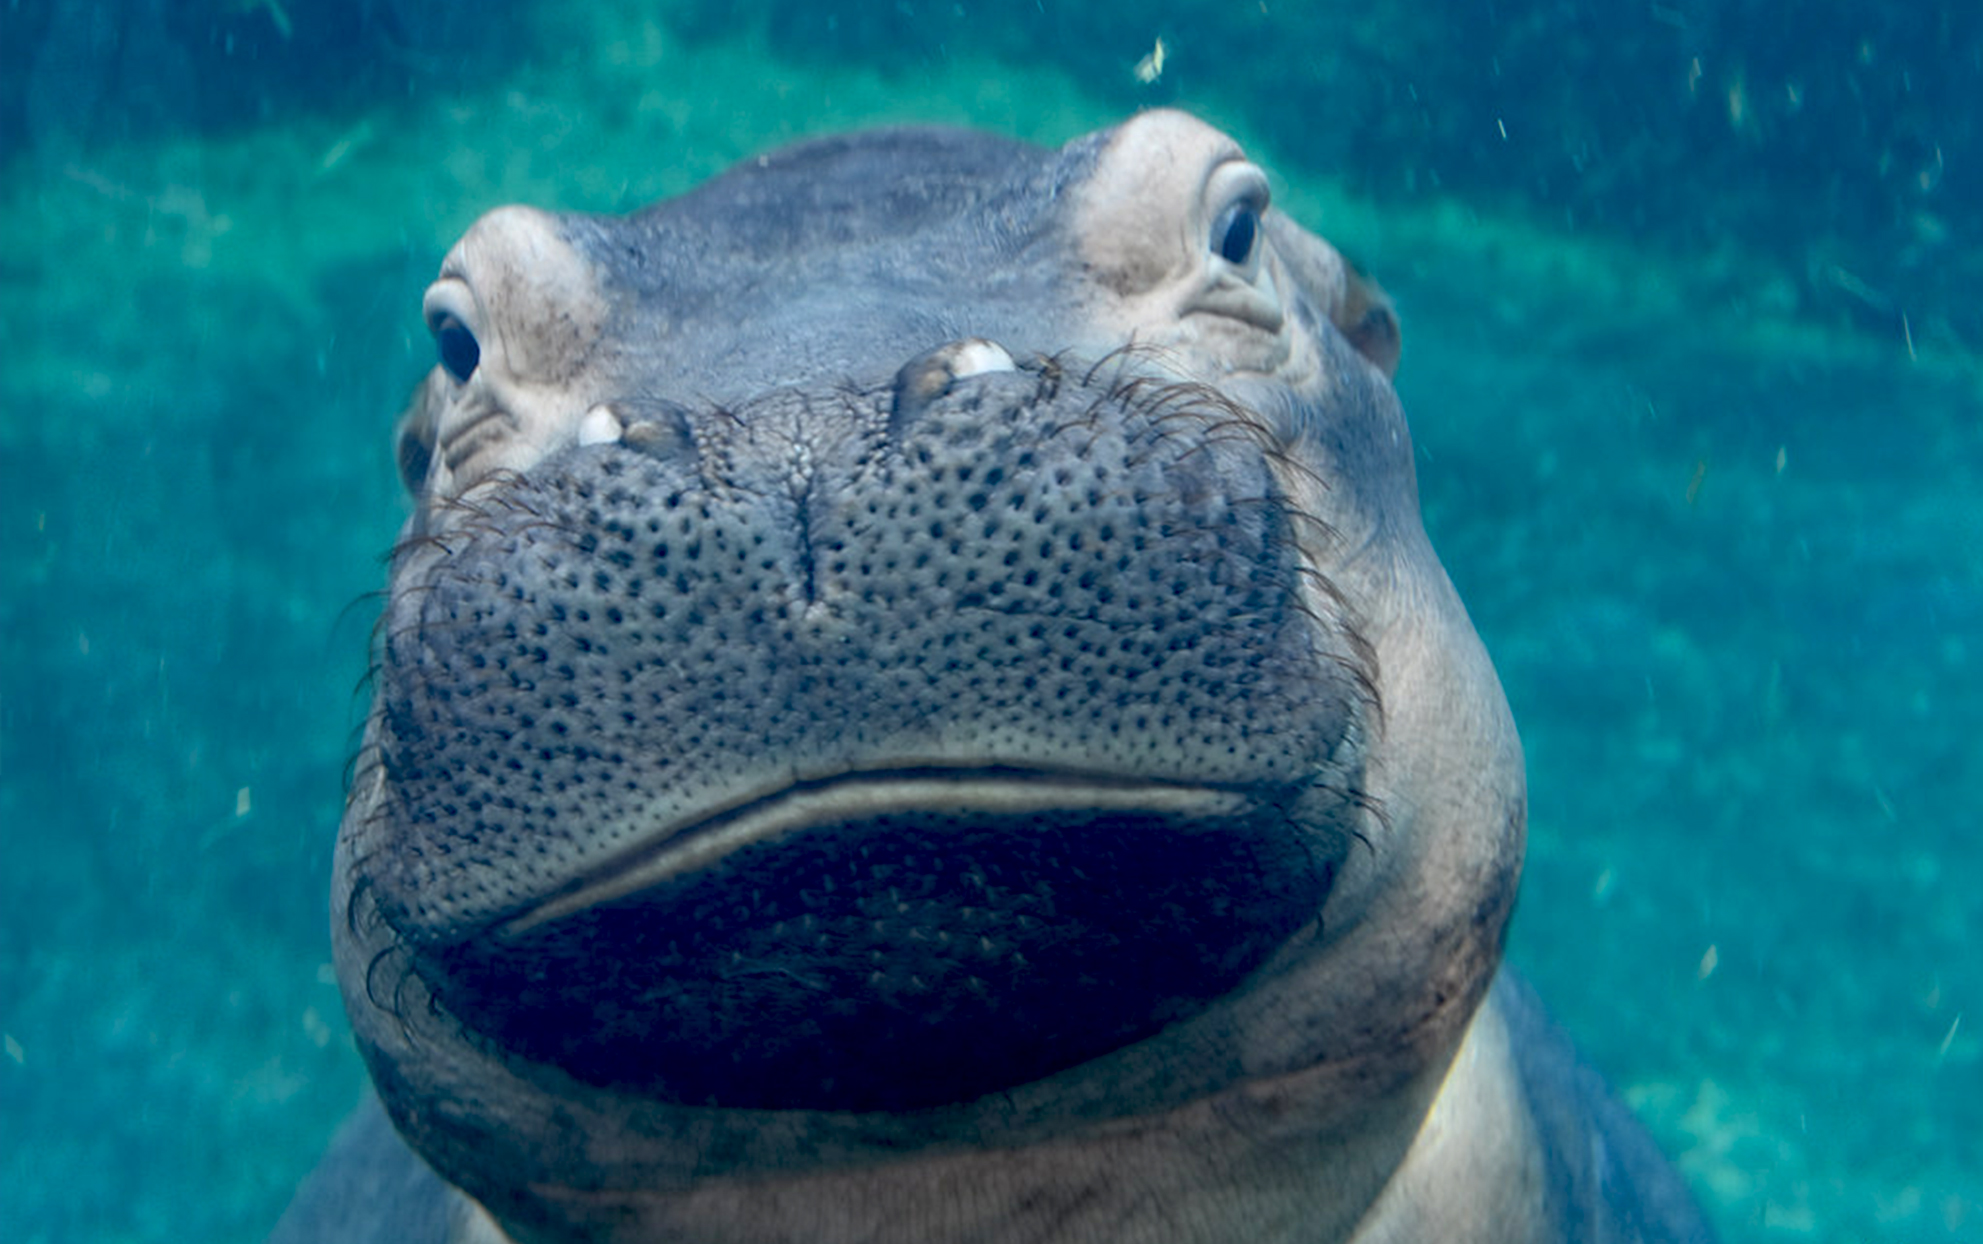 Fiona the hippo under water